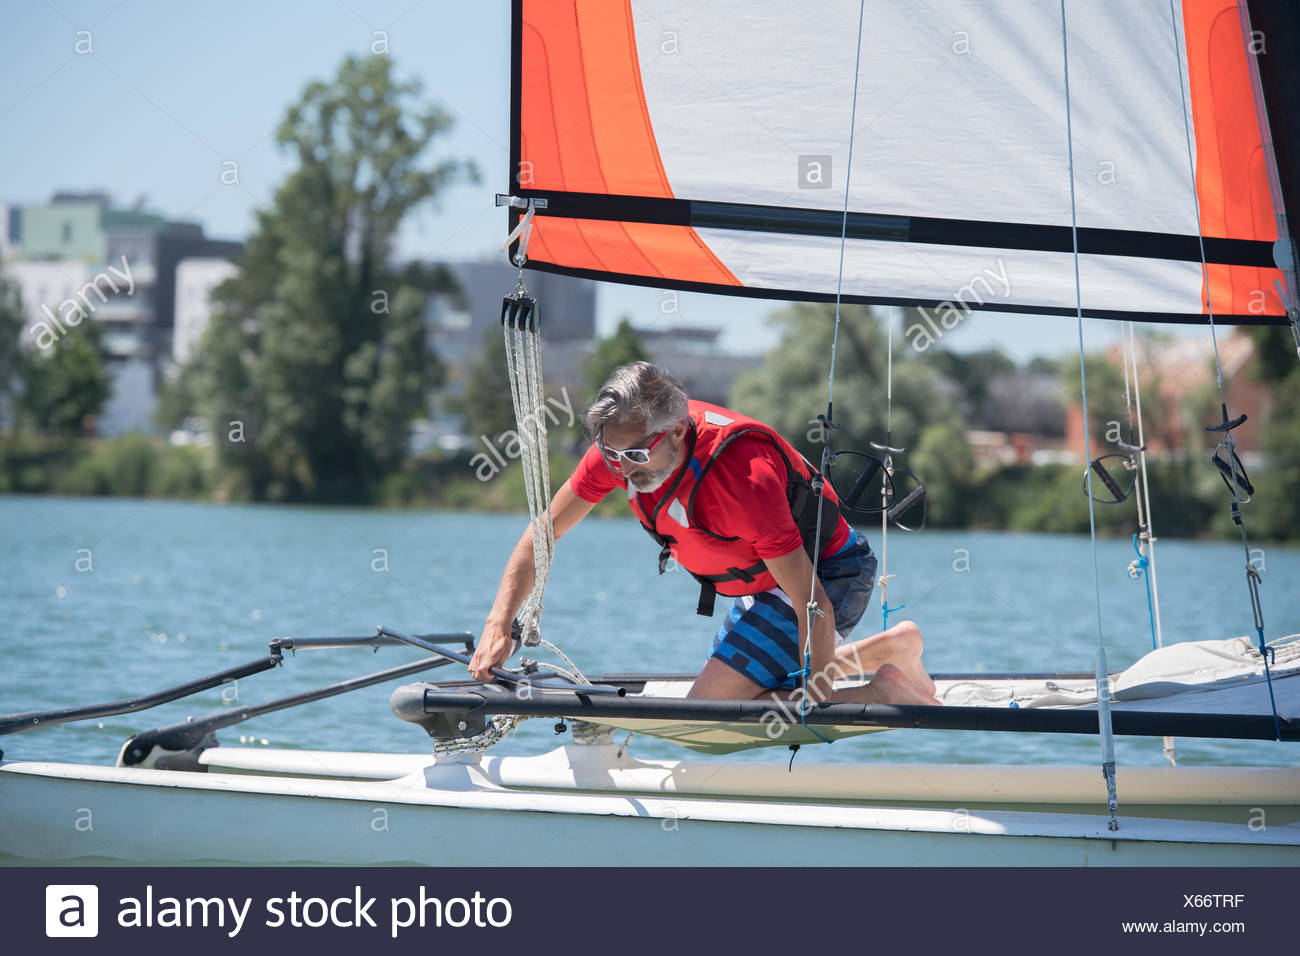 man on a saling boat - Stock Image